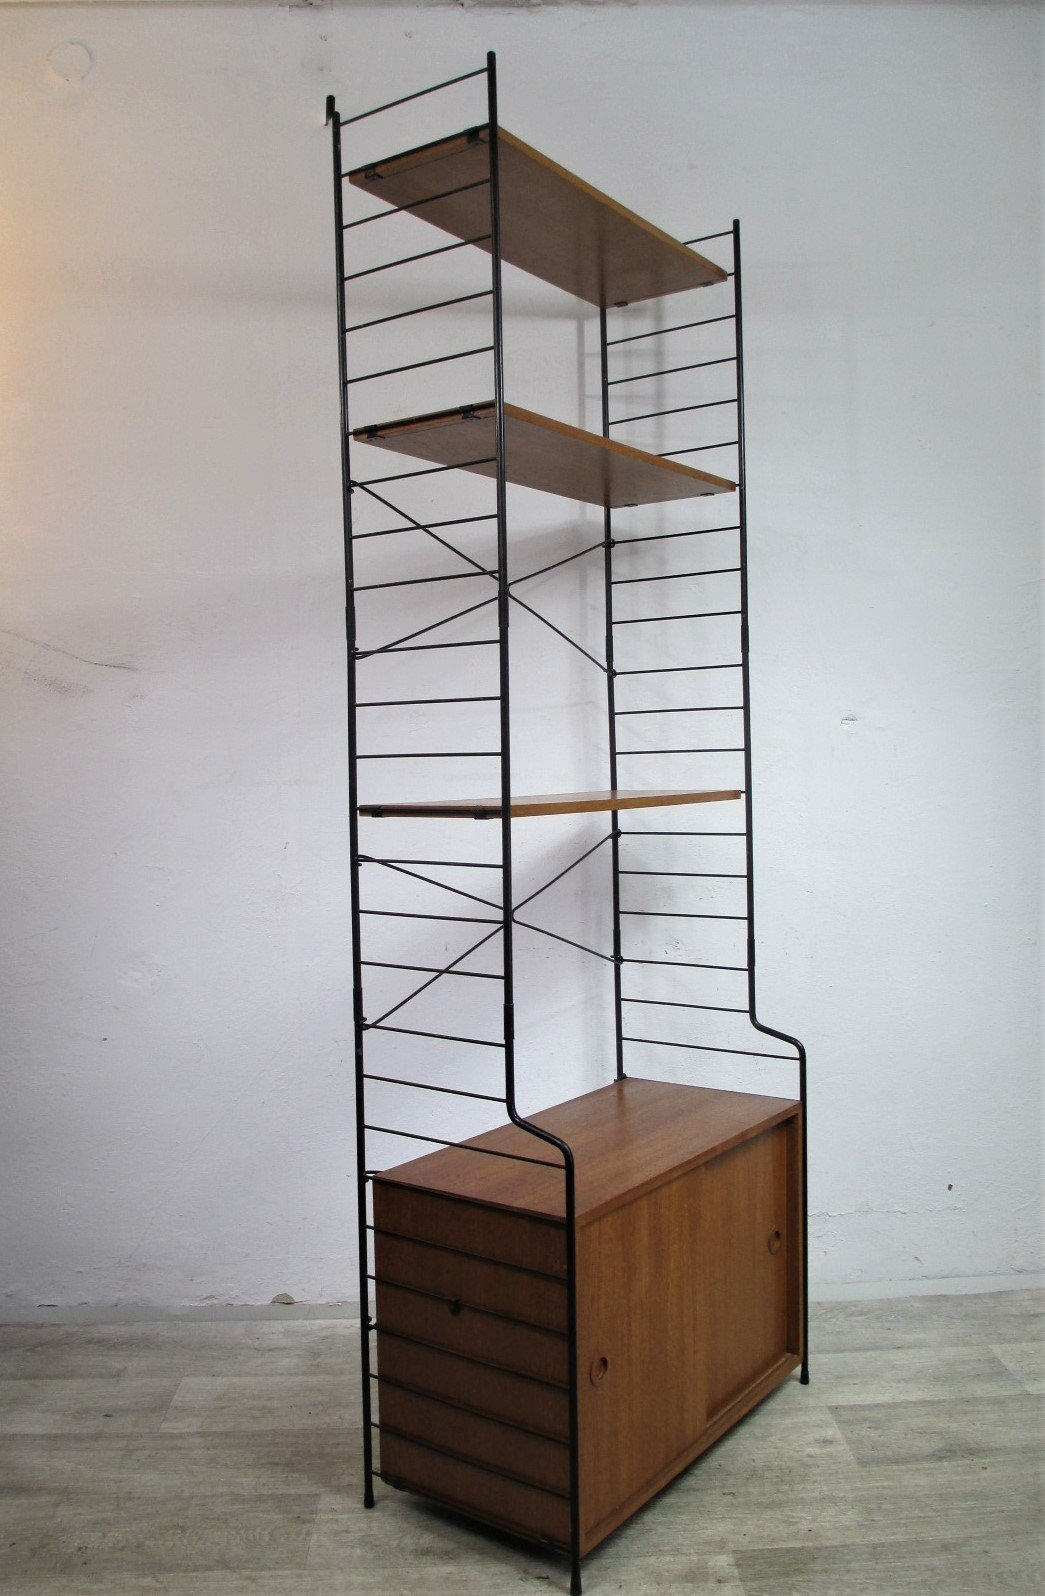 Bookcase, Denmark, 1960s - 510869 - photo